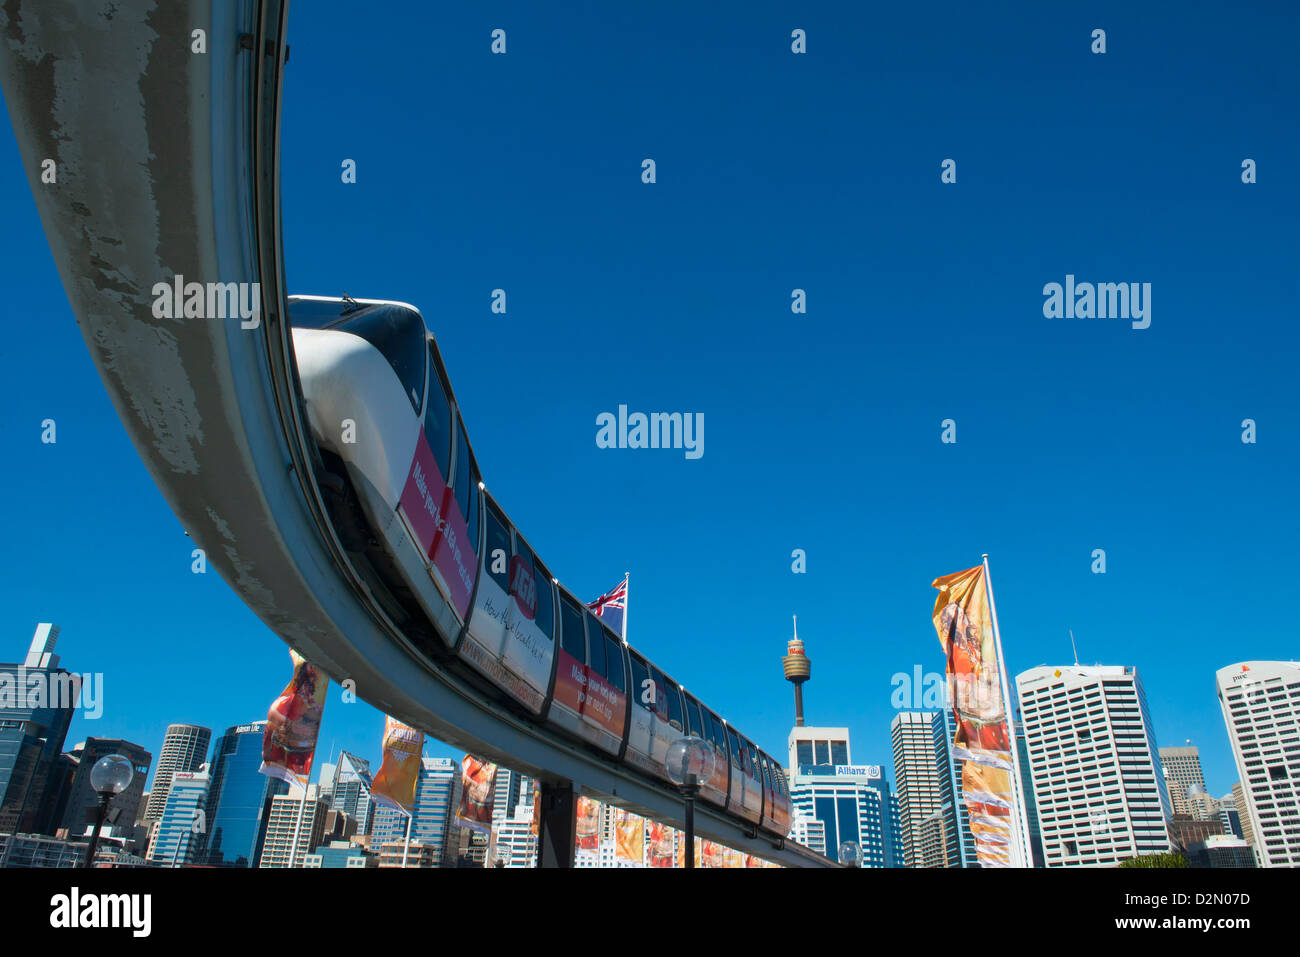 Monorail, Darling Harbour, Sydney, New South Wales, Australien, Pazifik Stockbild